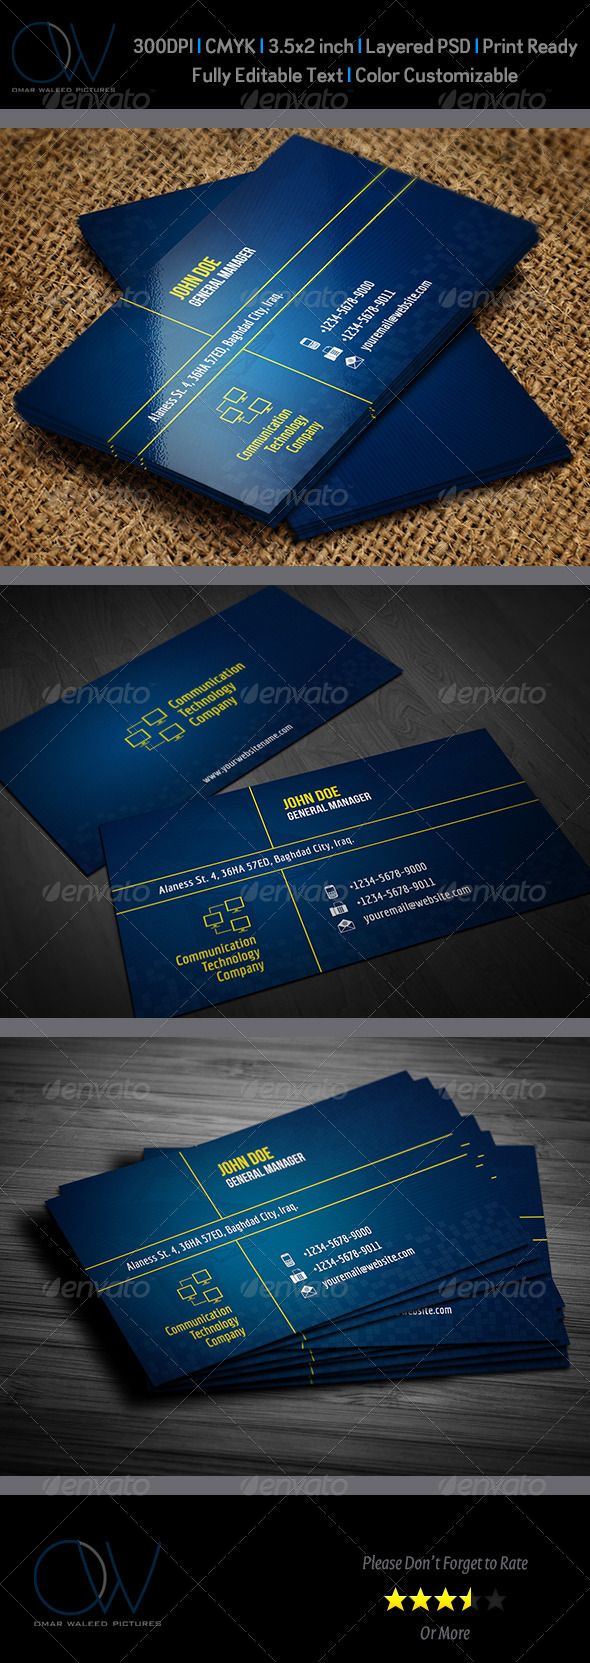 Communication Technology Business Card